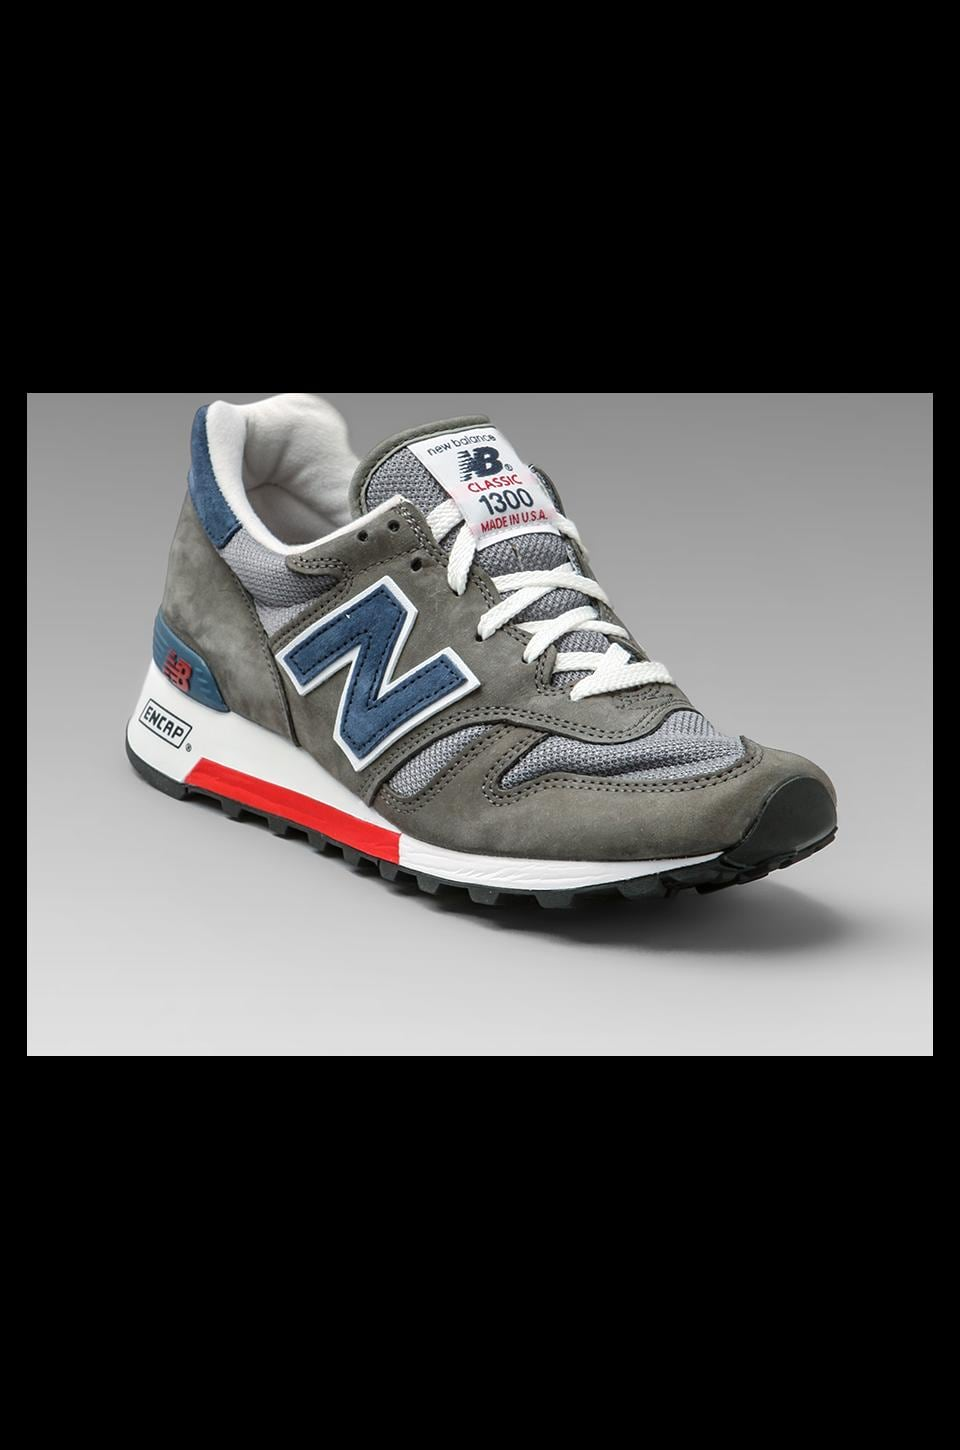 New Balance Classic Made in the USA M1300 in Grey/Navy/Red